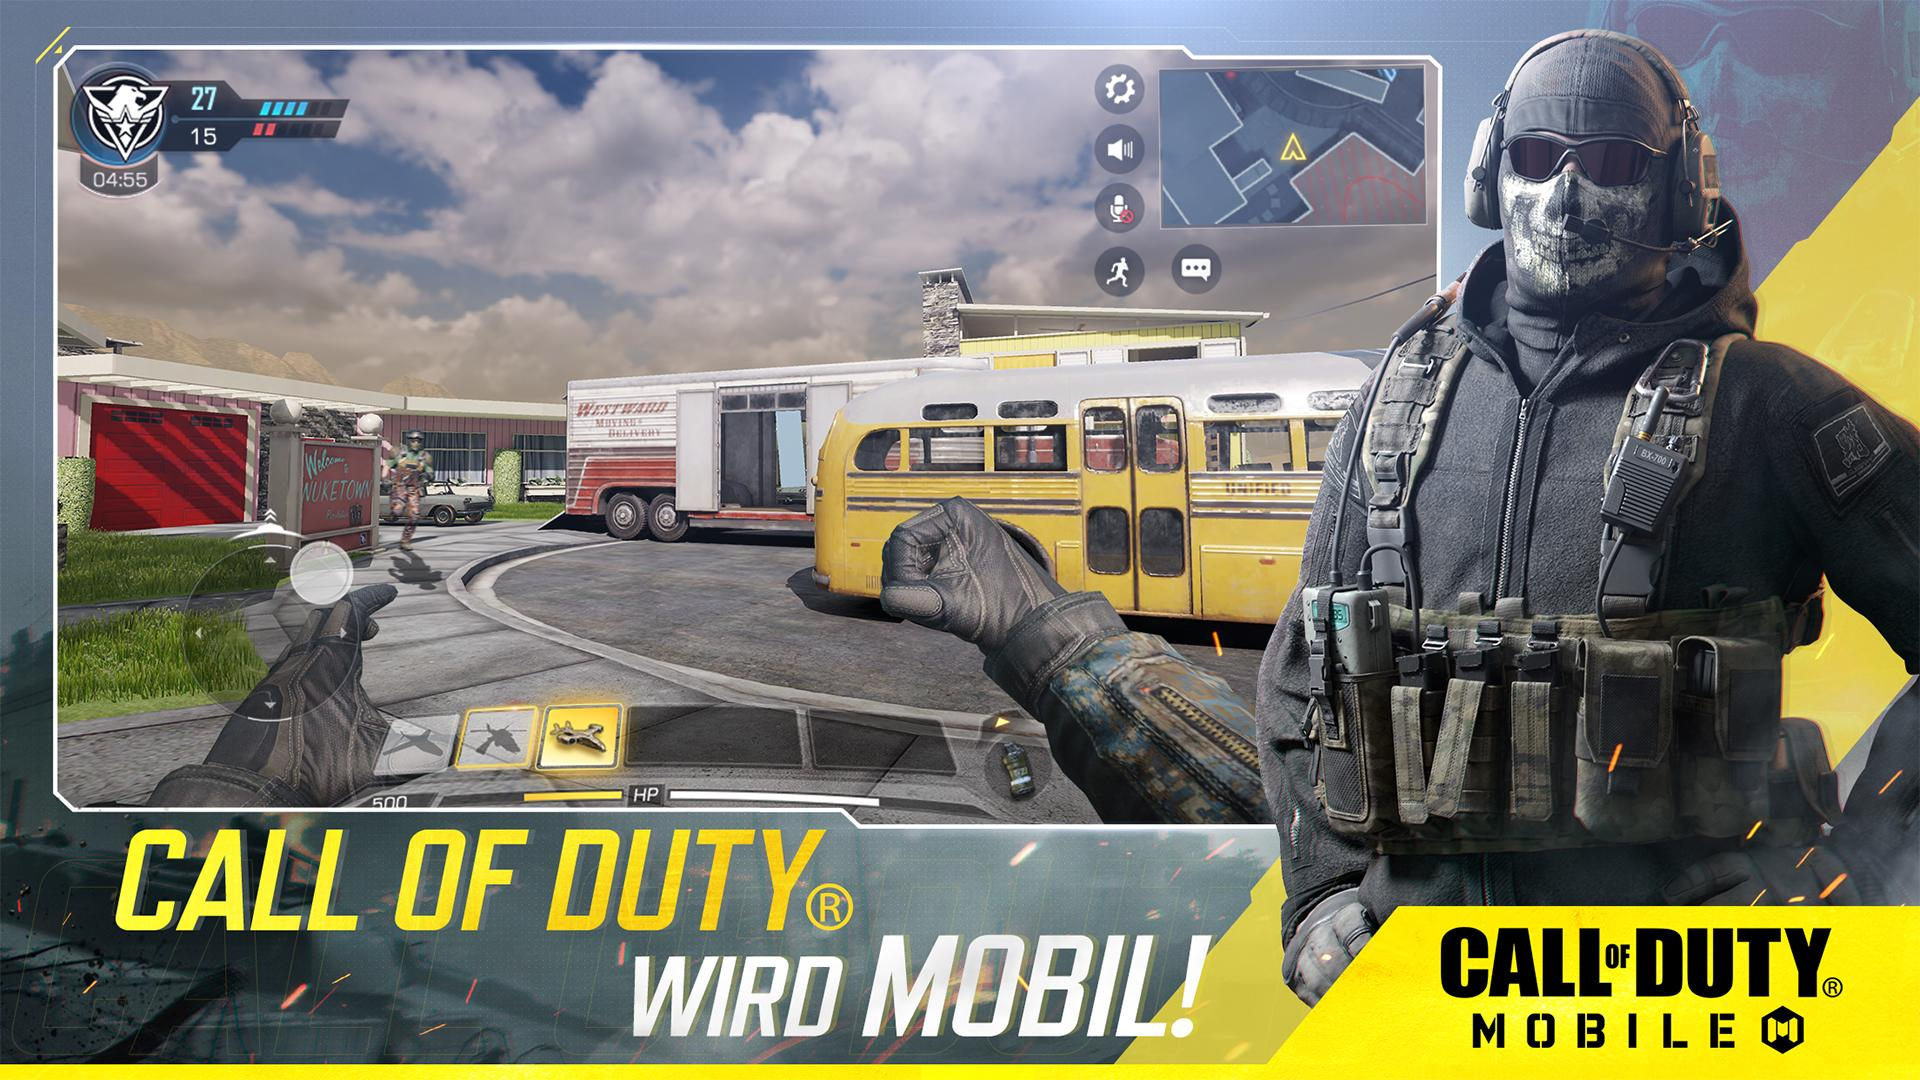 Call Of Duty Mobile Game Download Apk Obb Coinscod.Com ... -